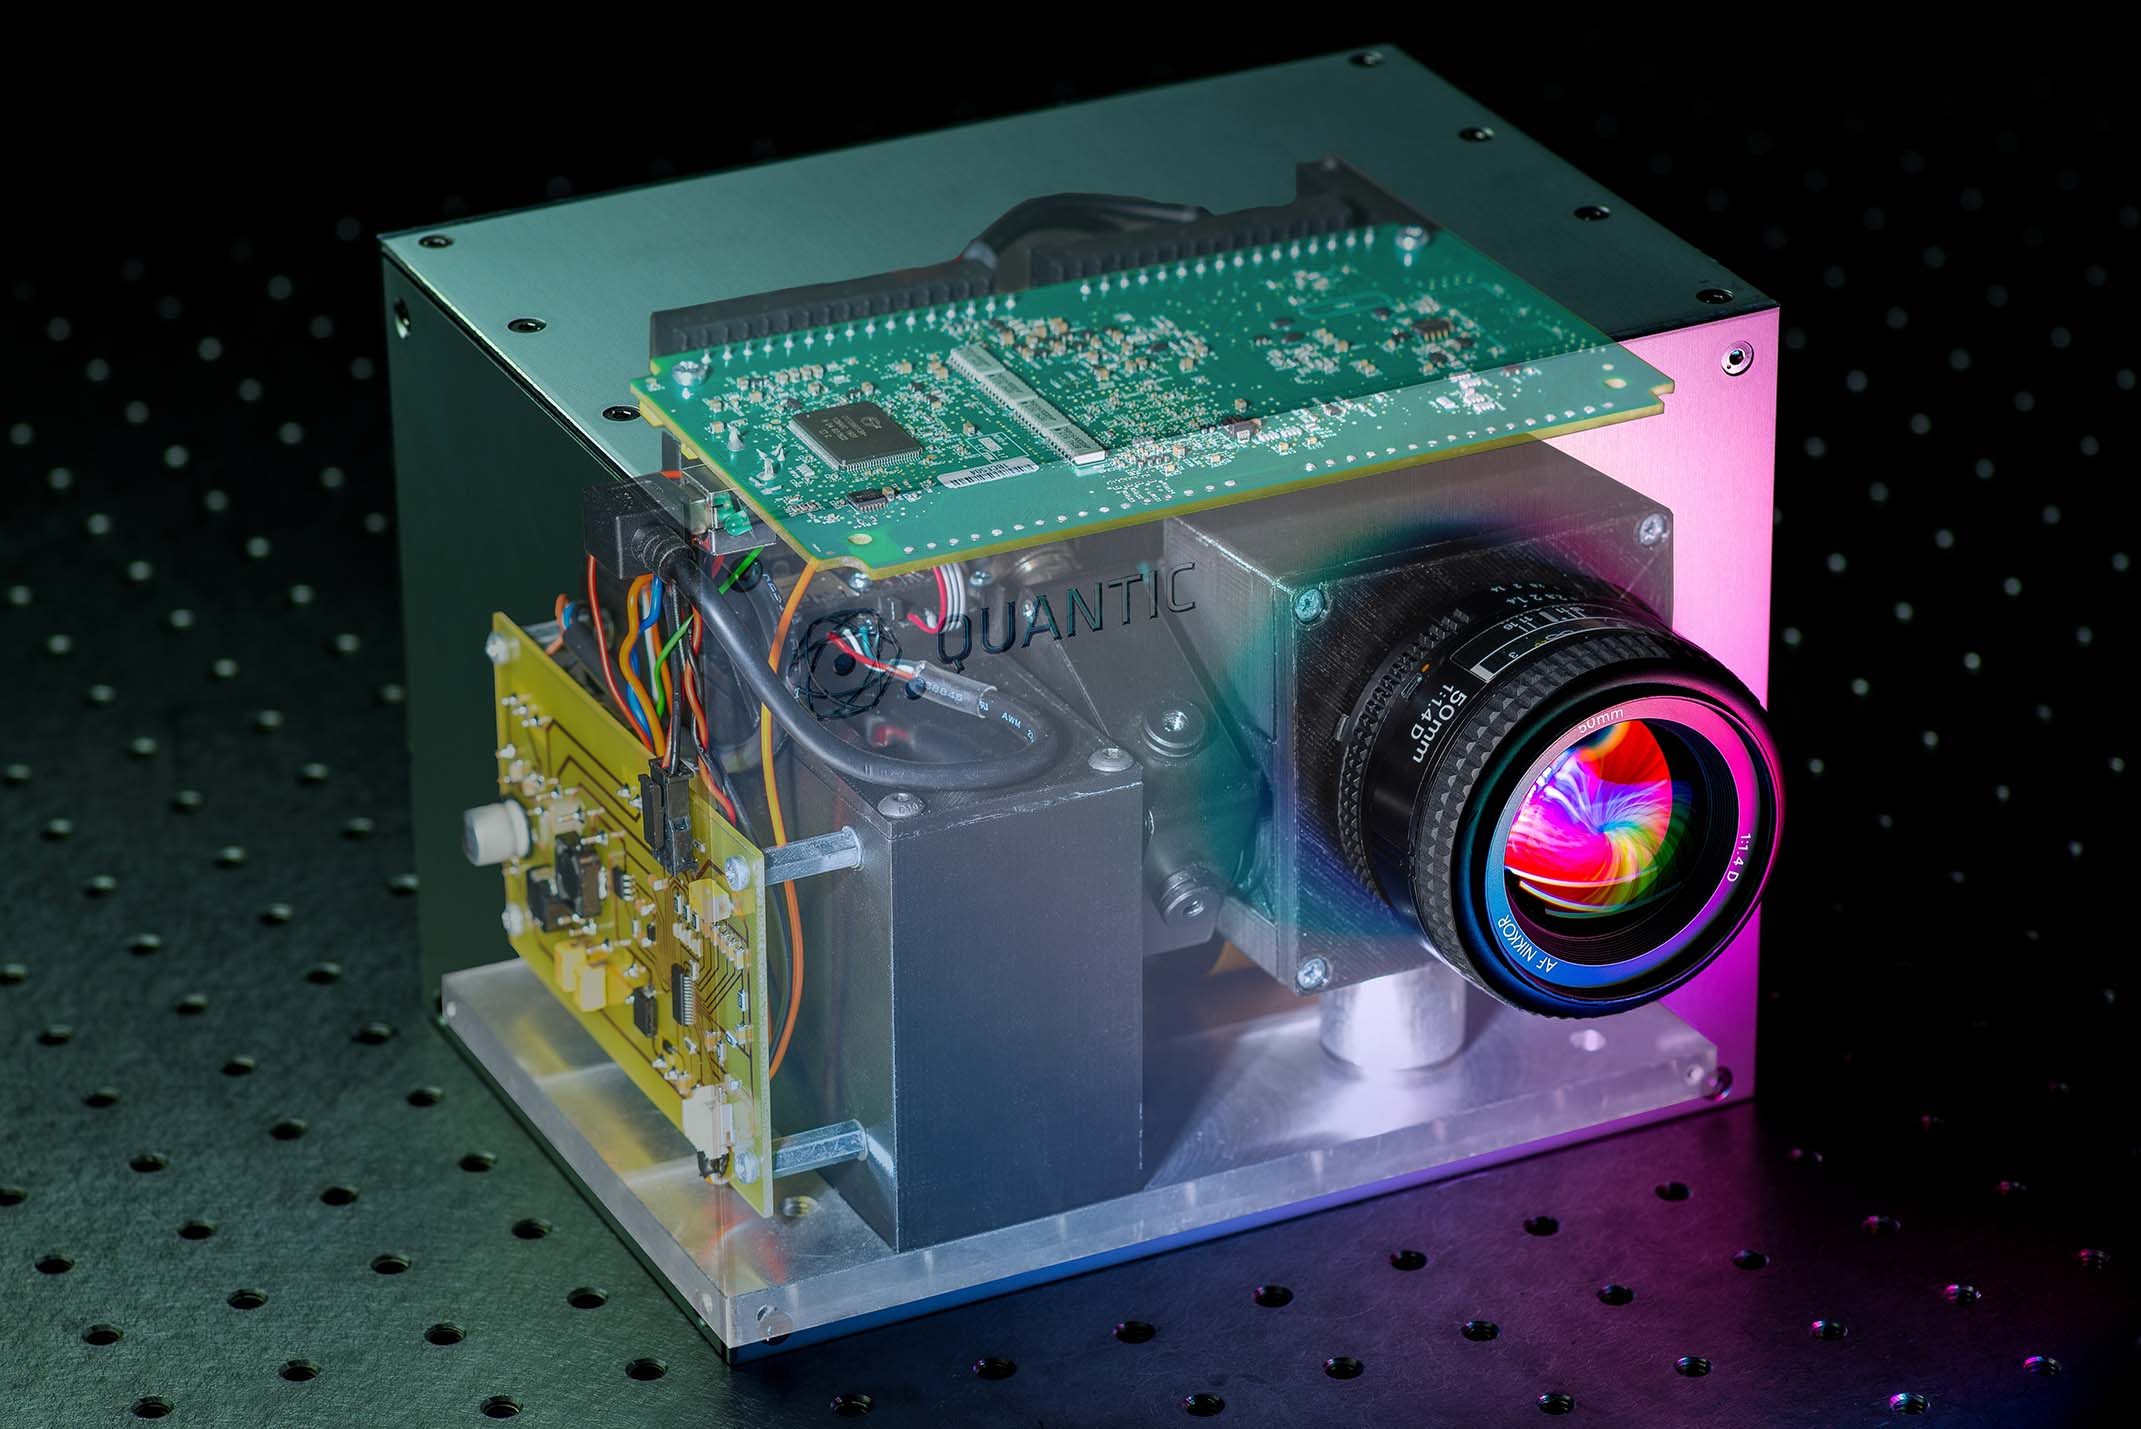 The Single Pixel Camera from QuantIC in Glasgow, Scotland (UK)